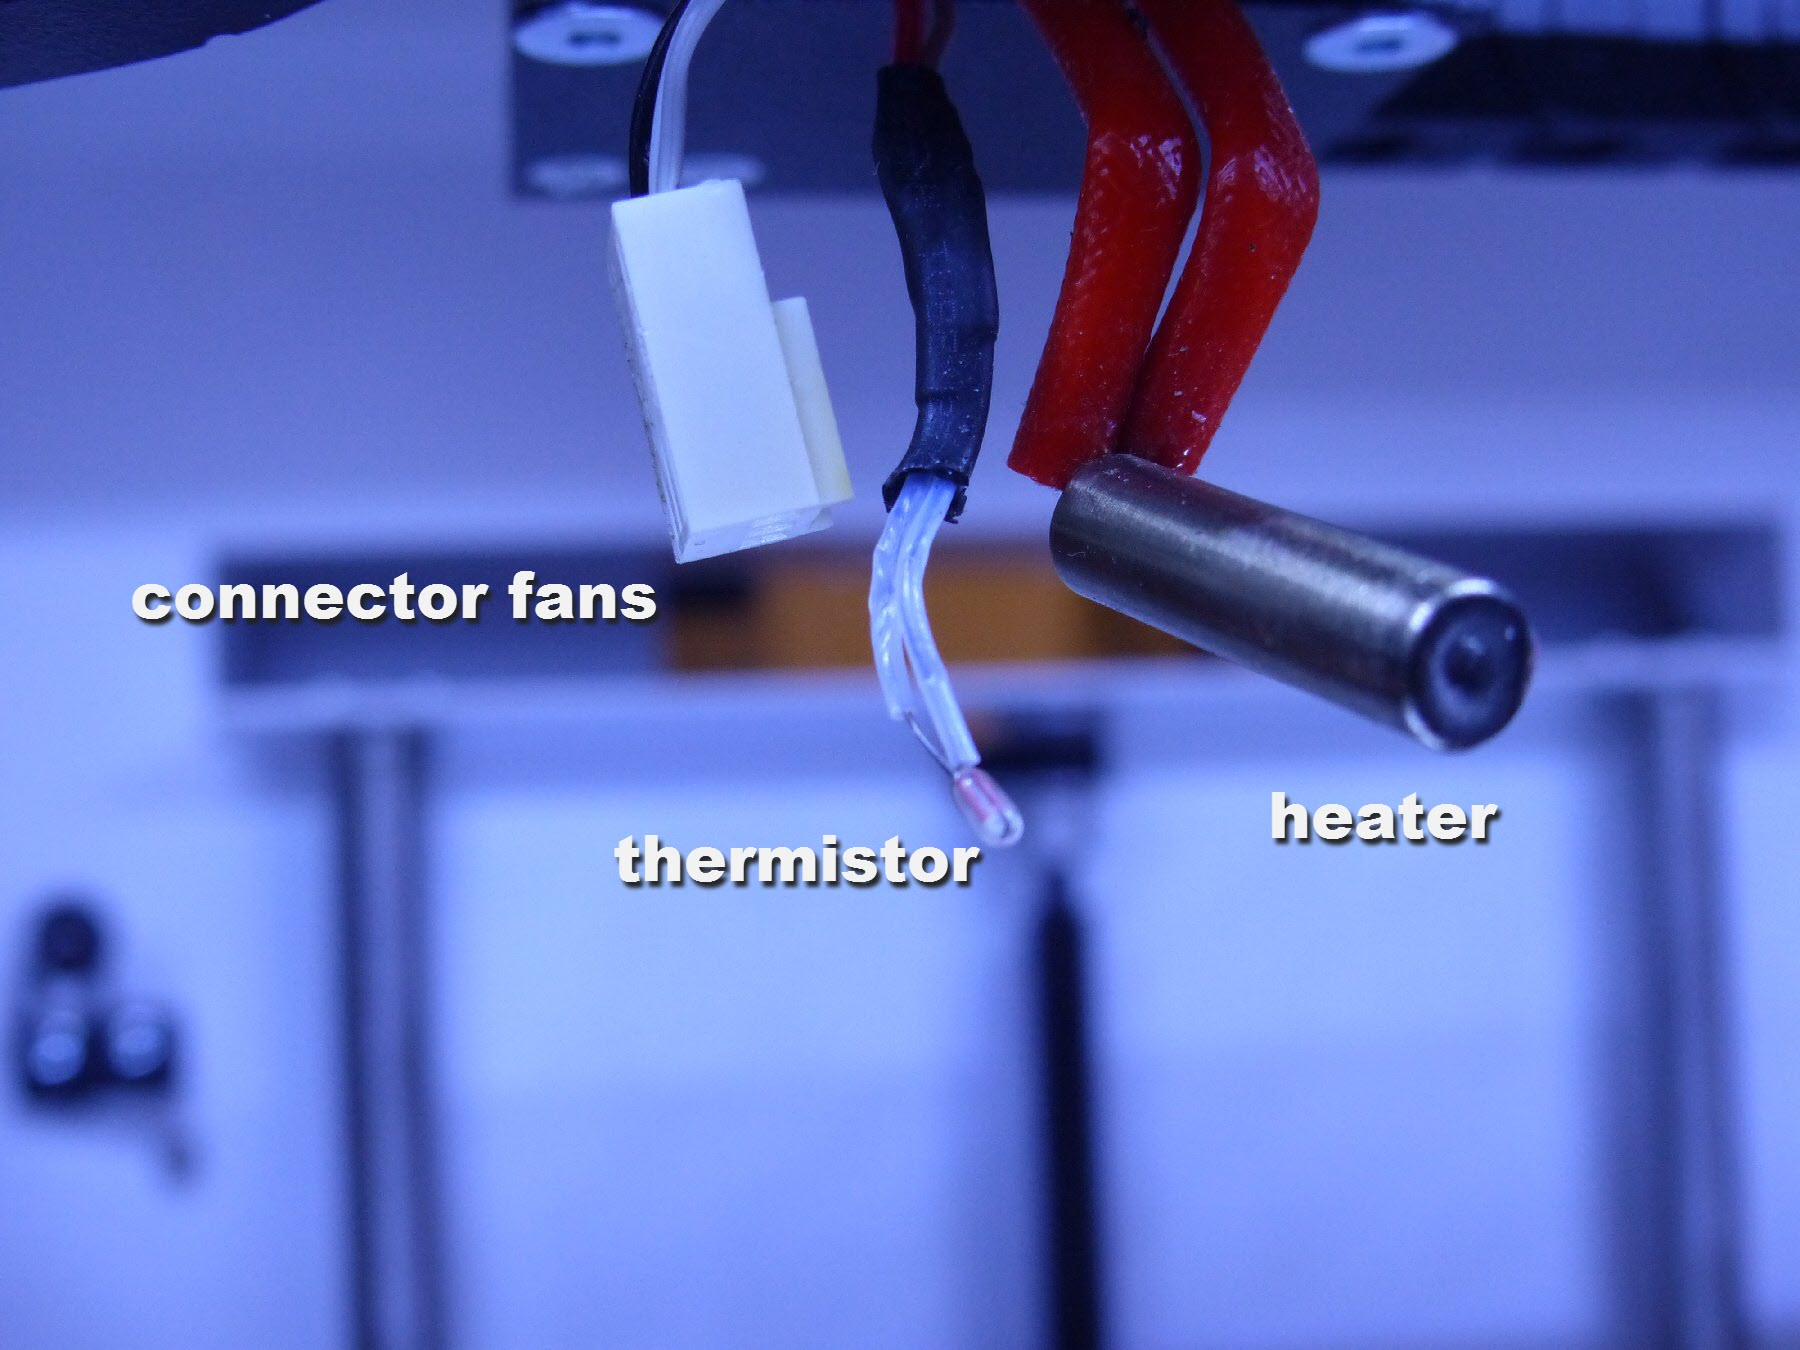 mini-8 heater and thermistor